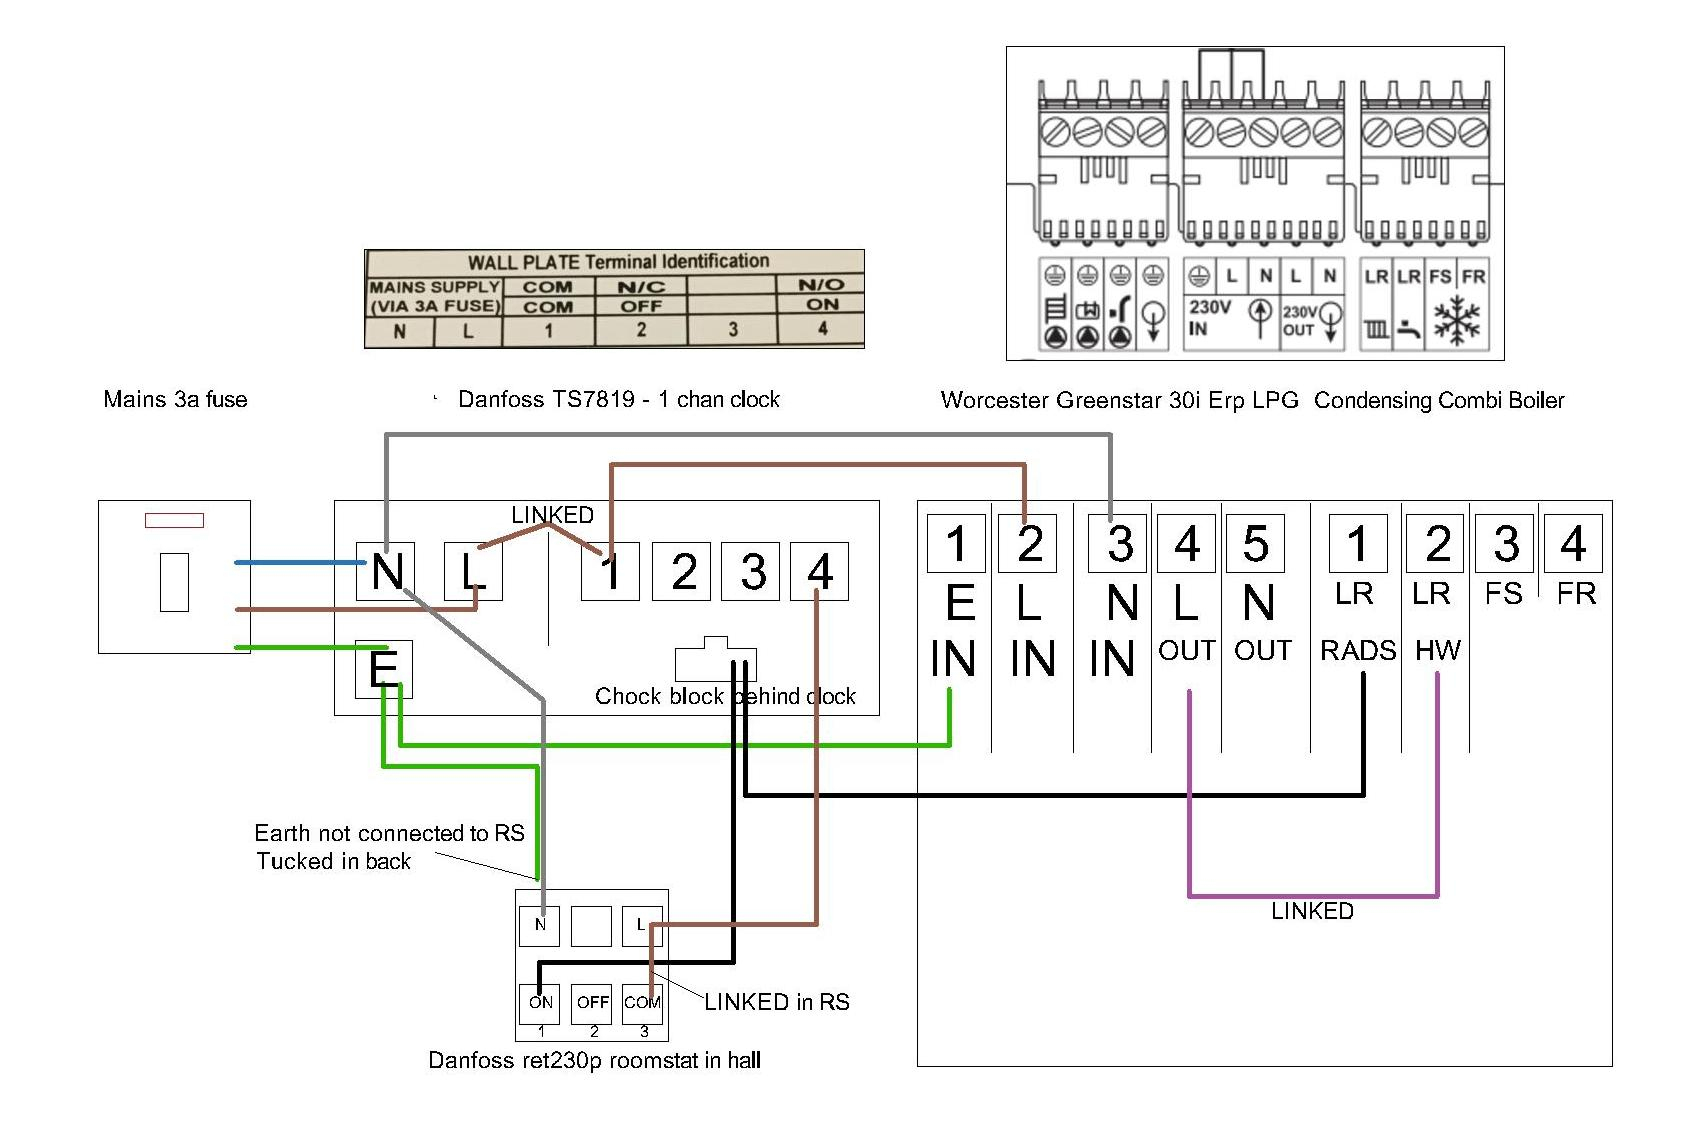 Current Boiler Diagram And Looking To Go Nest. | Diynot Forums - Nest Heat Link Wiring Diagram Combi